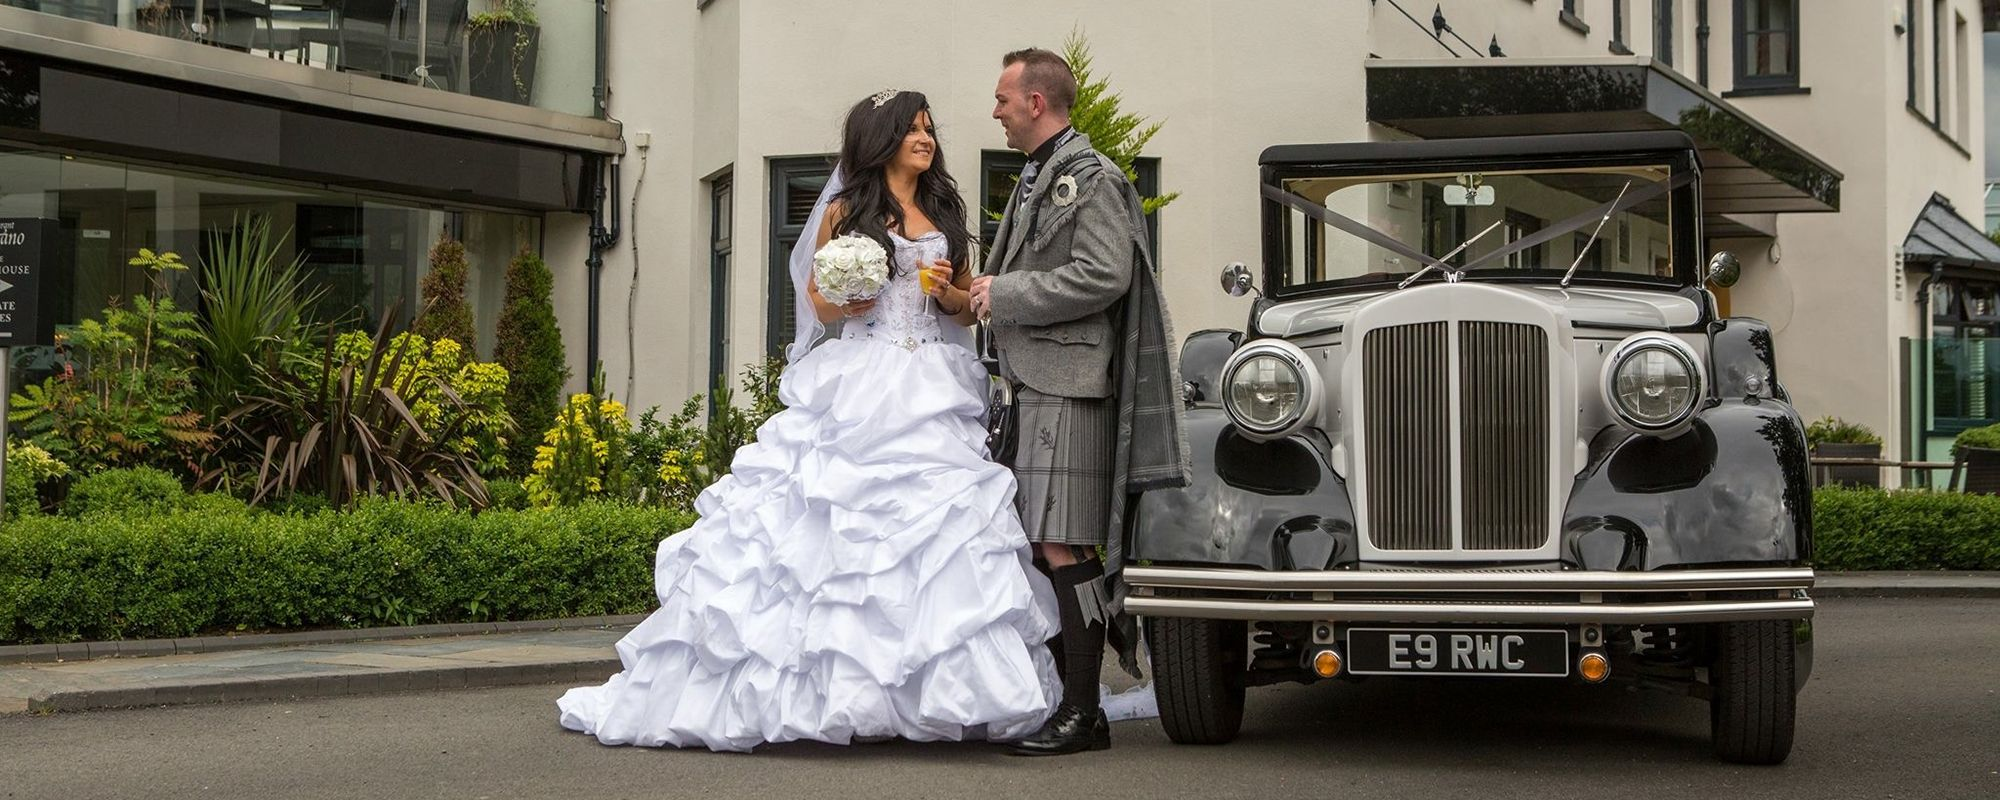 Wedding Cars Glasgow